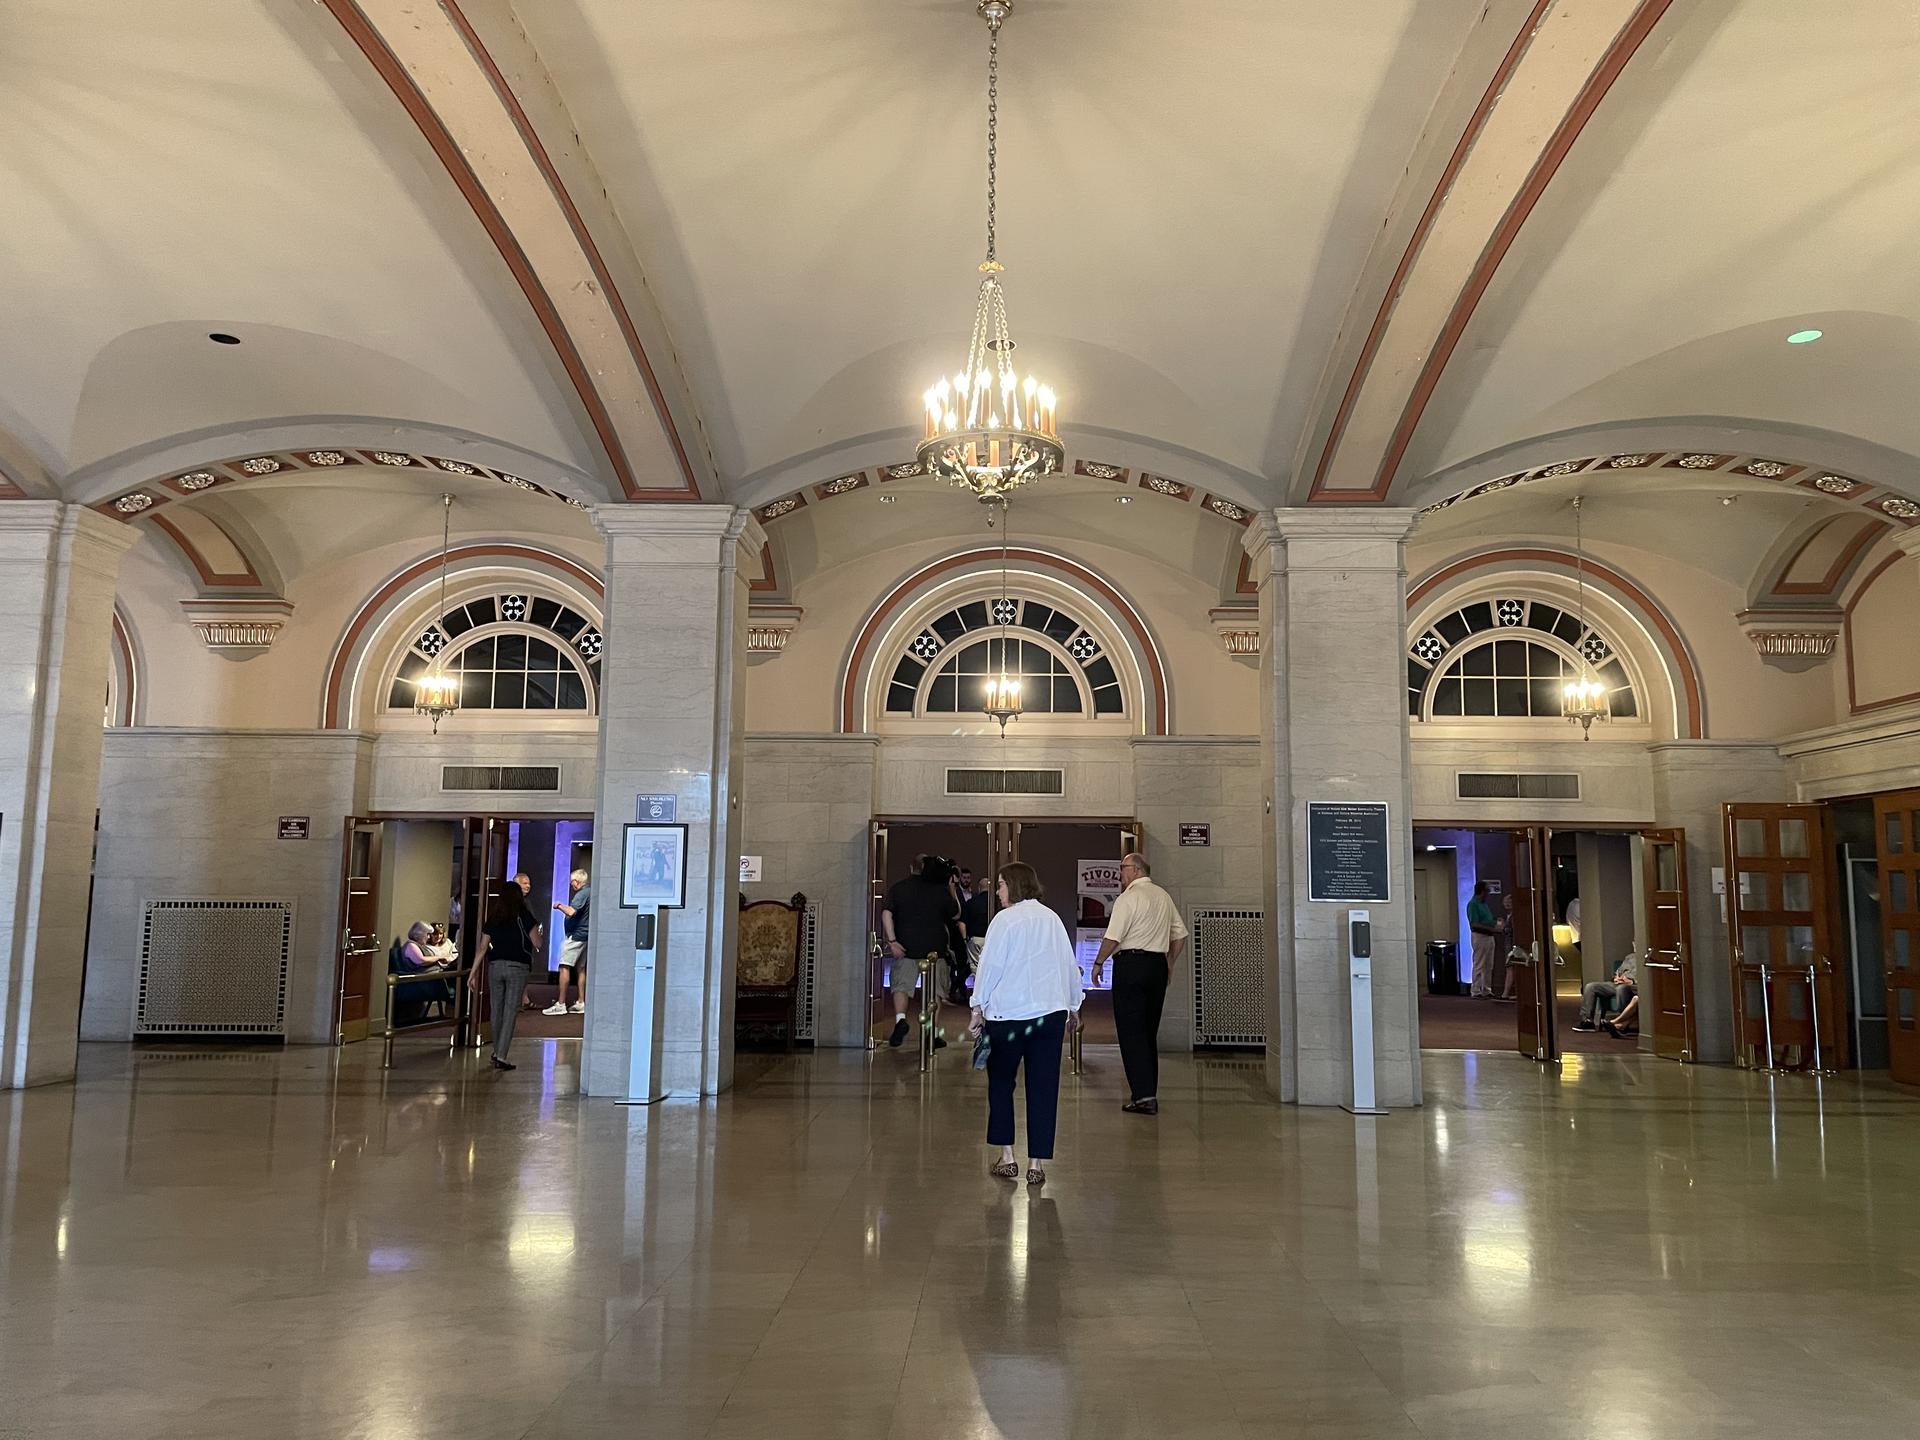 Photo of the Soldiers & Sailors Memorial Auditorium atrium, with a grand chandelier and three main entryways.